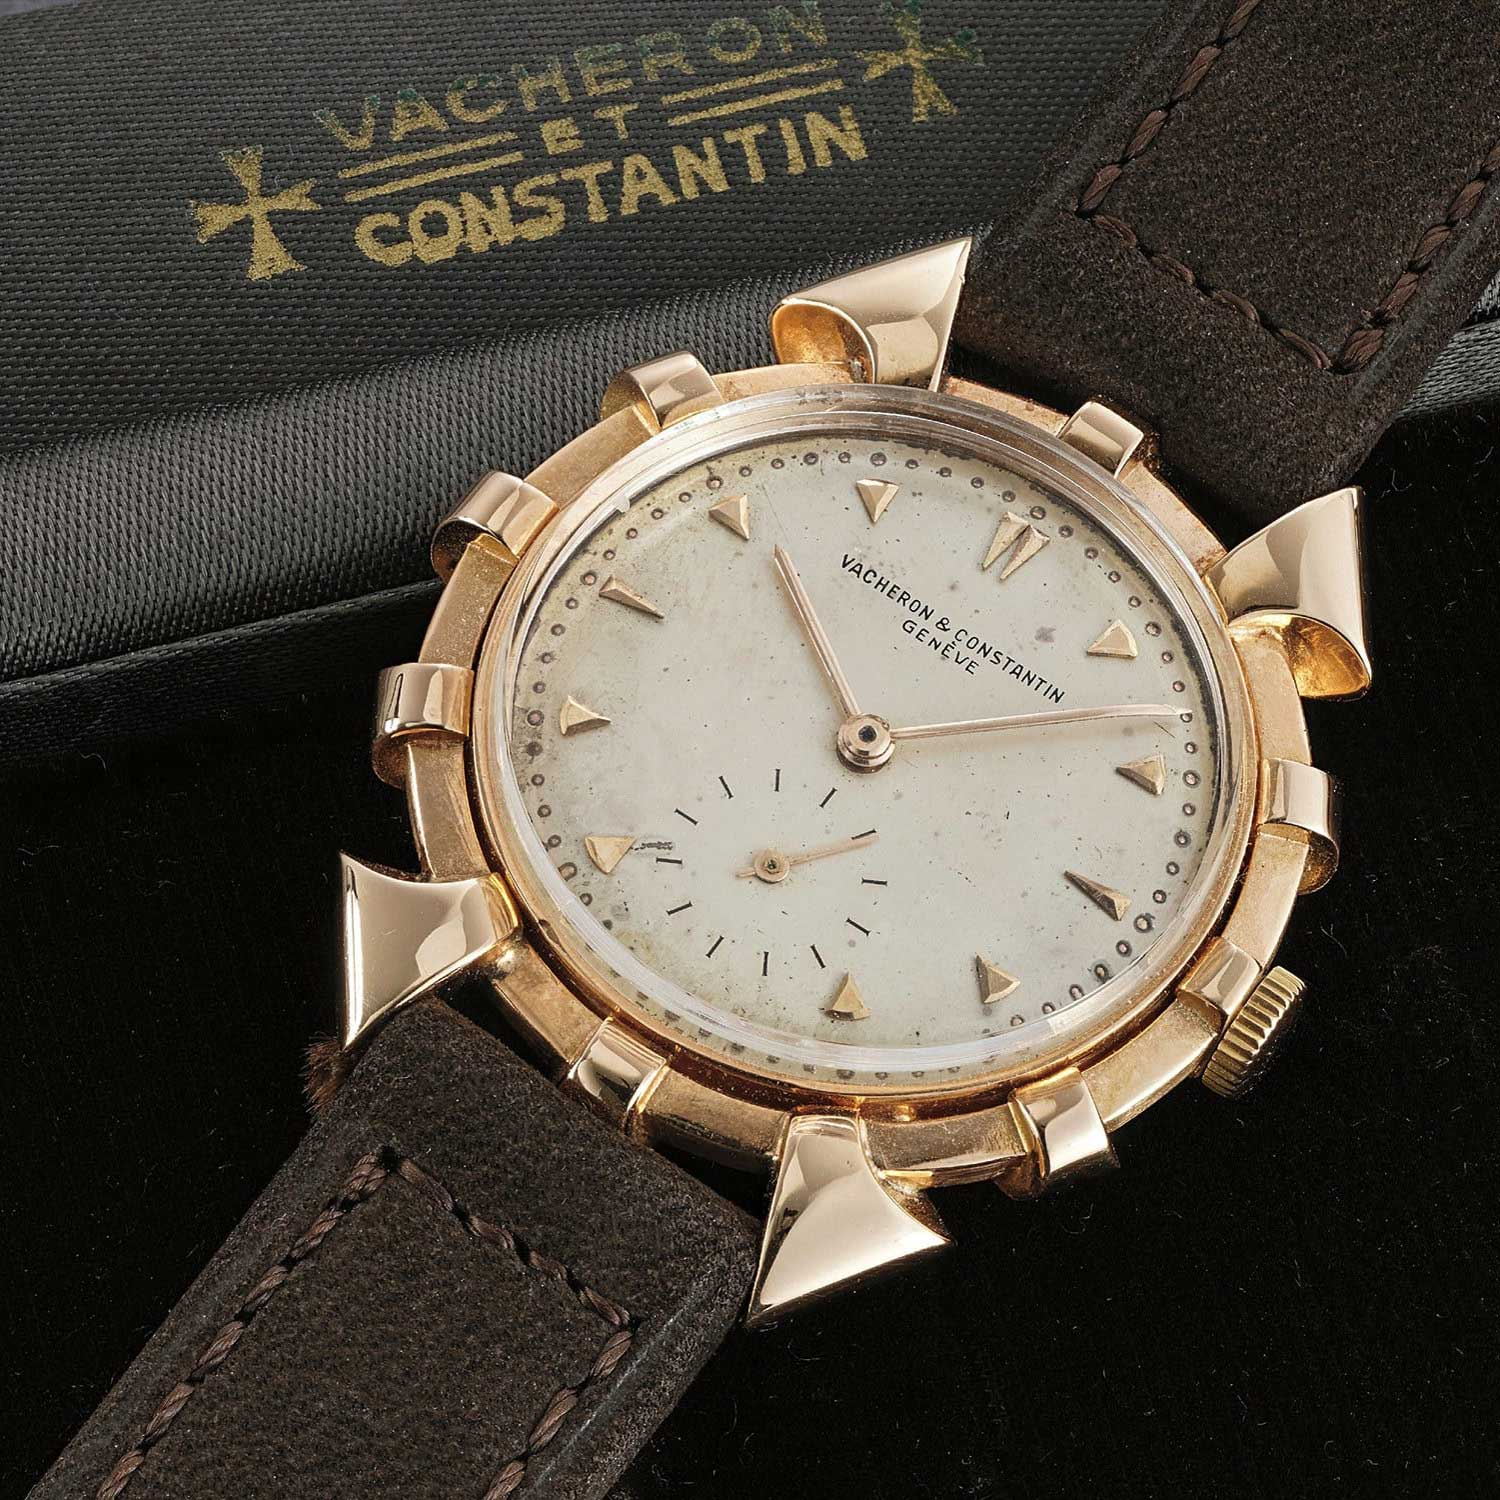 """Nicknamed the """"Helm"""" for its resemblance with a ship helm, the ref. 4709 from Vacheron Constantin boasts a case manufactured by C. Markowsky.(Image Phillips)"""